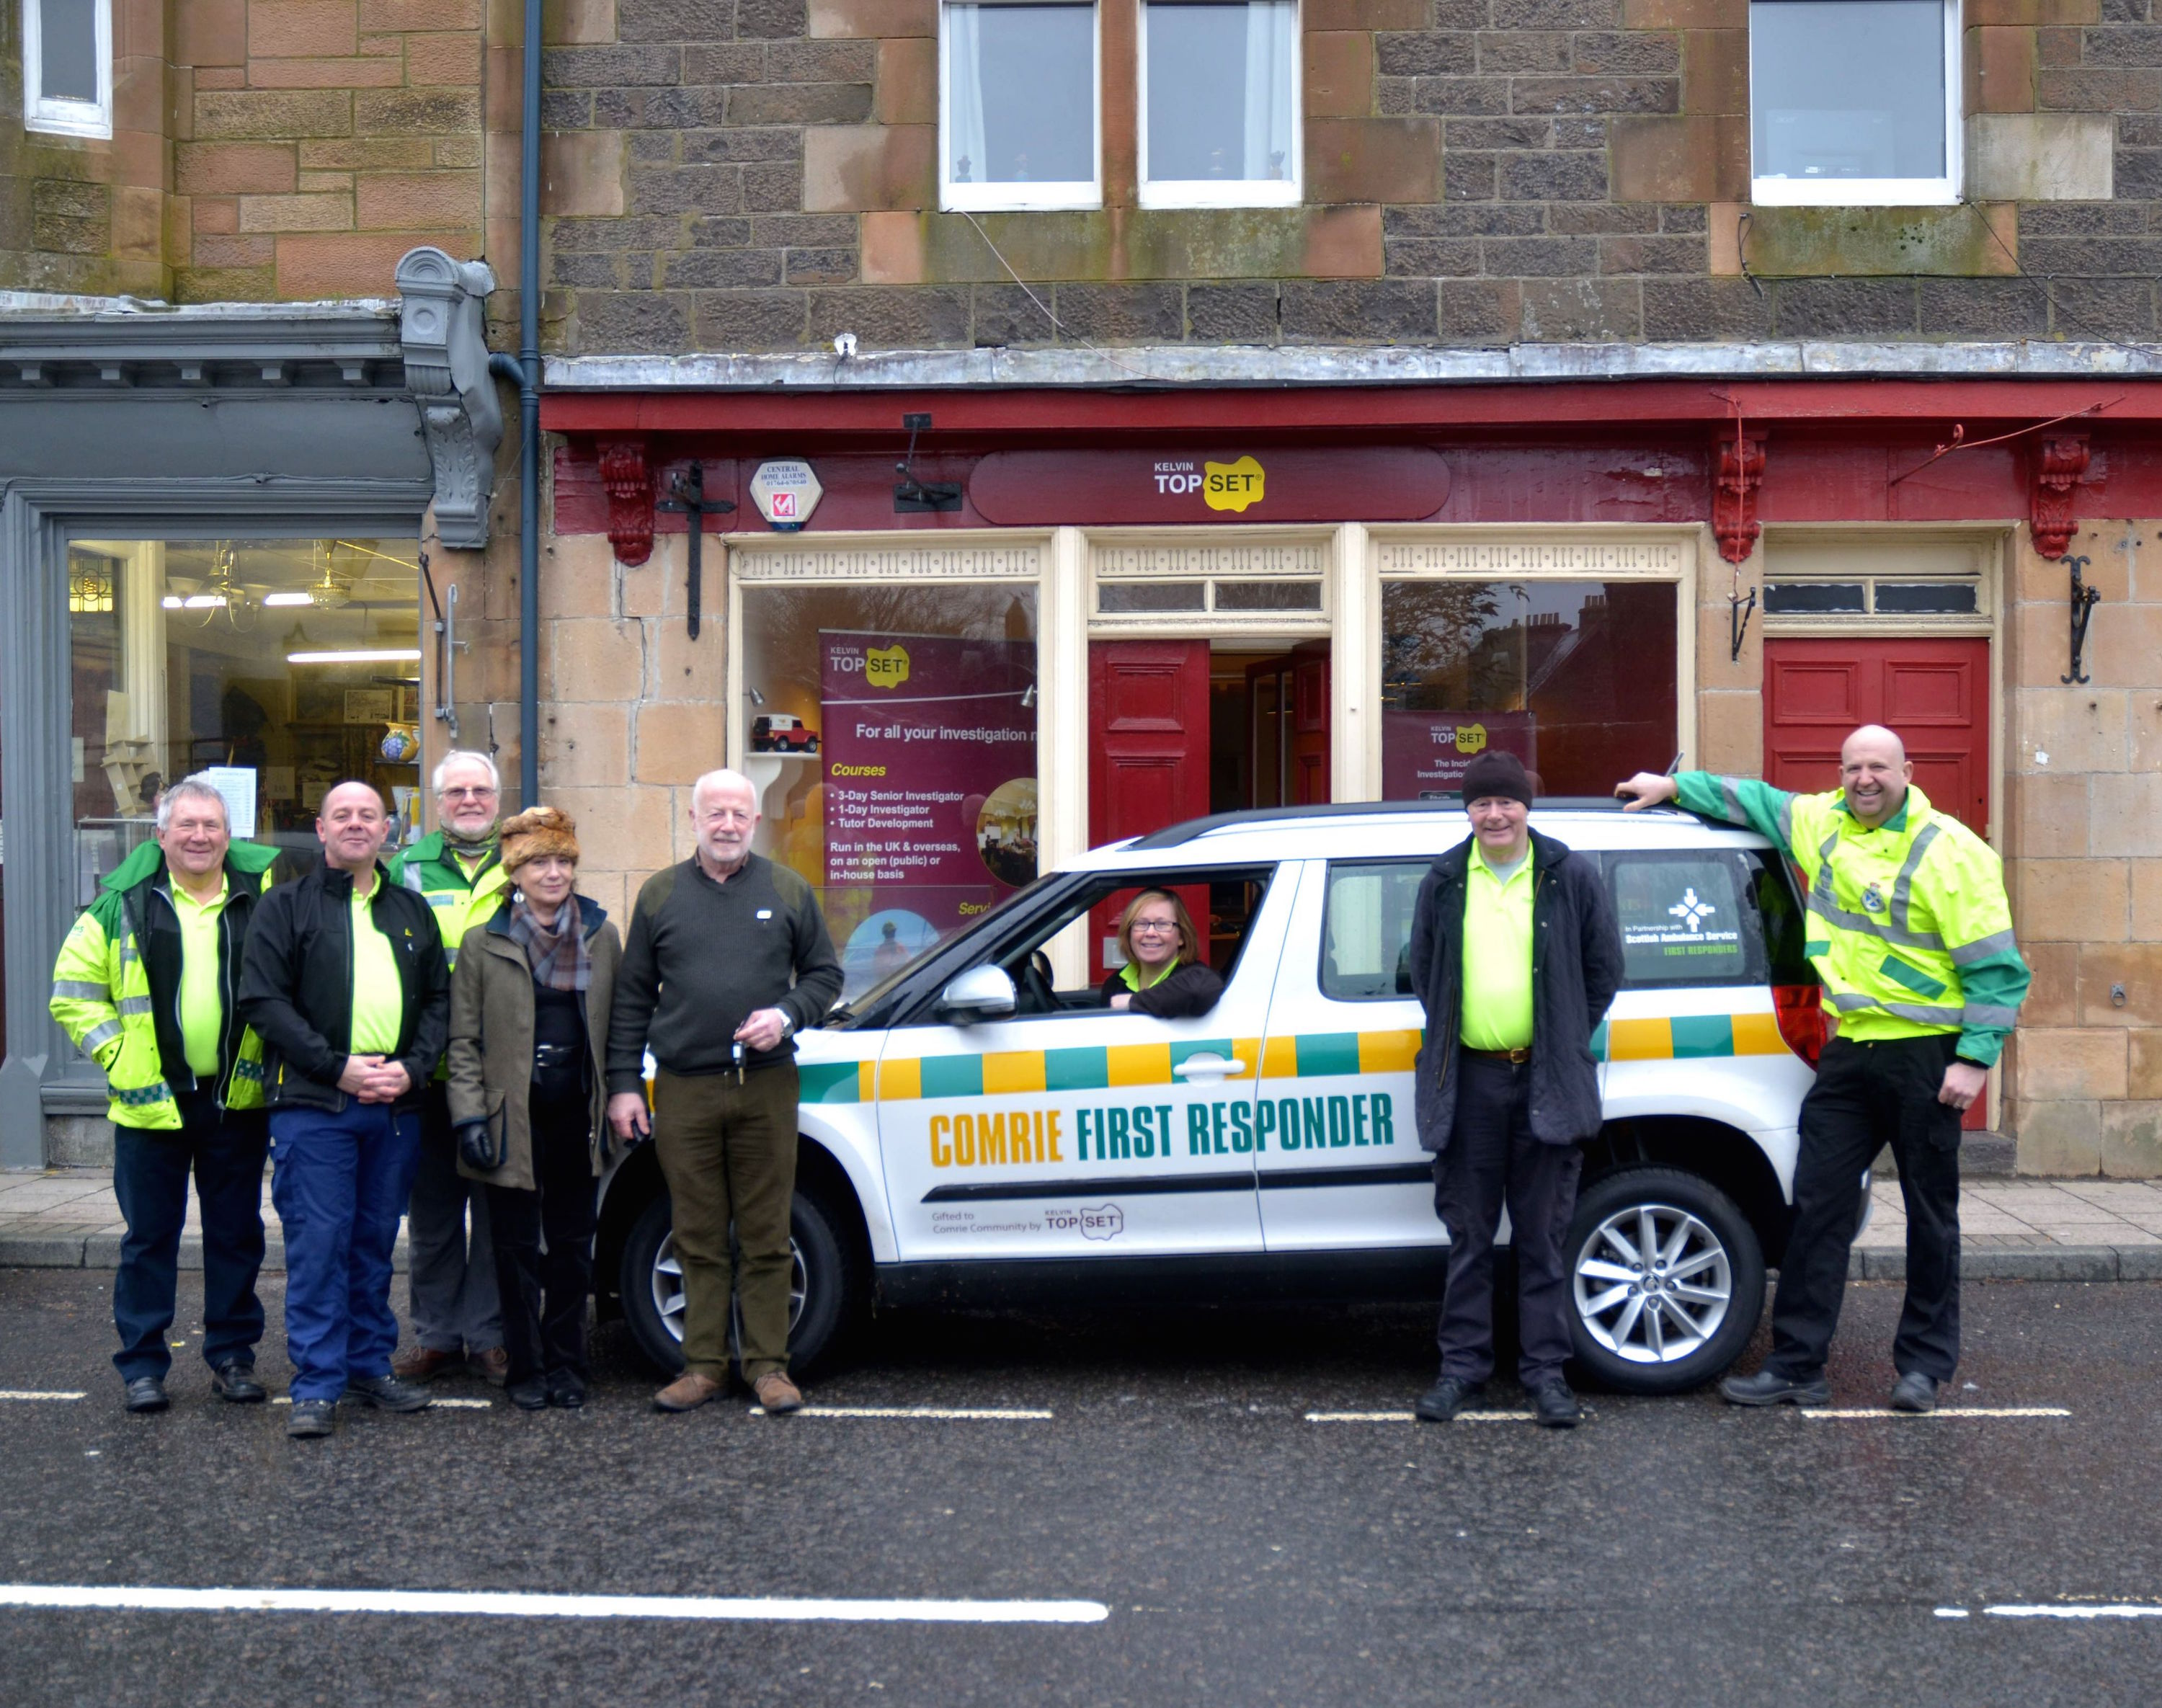 Members of the Comrie First response team Ken Heiser, Alan Moffat, John King, Eileen Laycock, Muir Hunter and Andrew Laycock were deligted to receive the donation of a new 4x4 from Lorna and David Ramsay of Kelvin TOP-SET